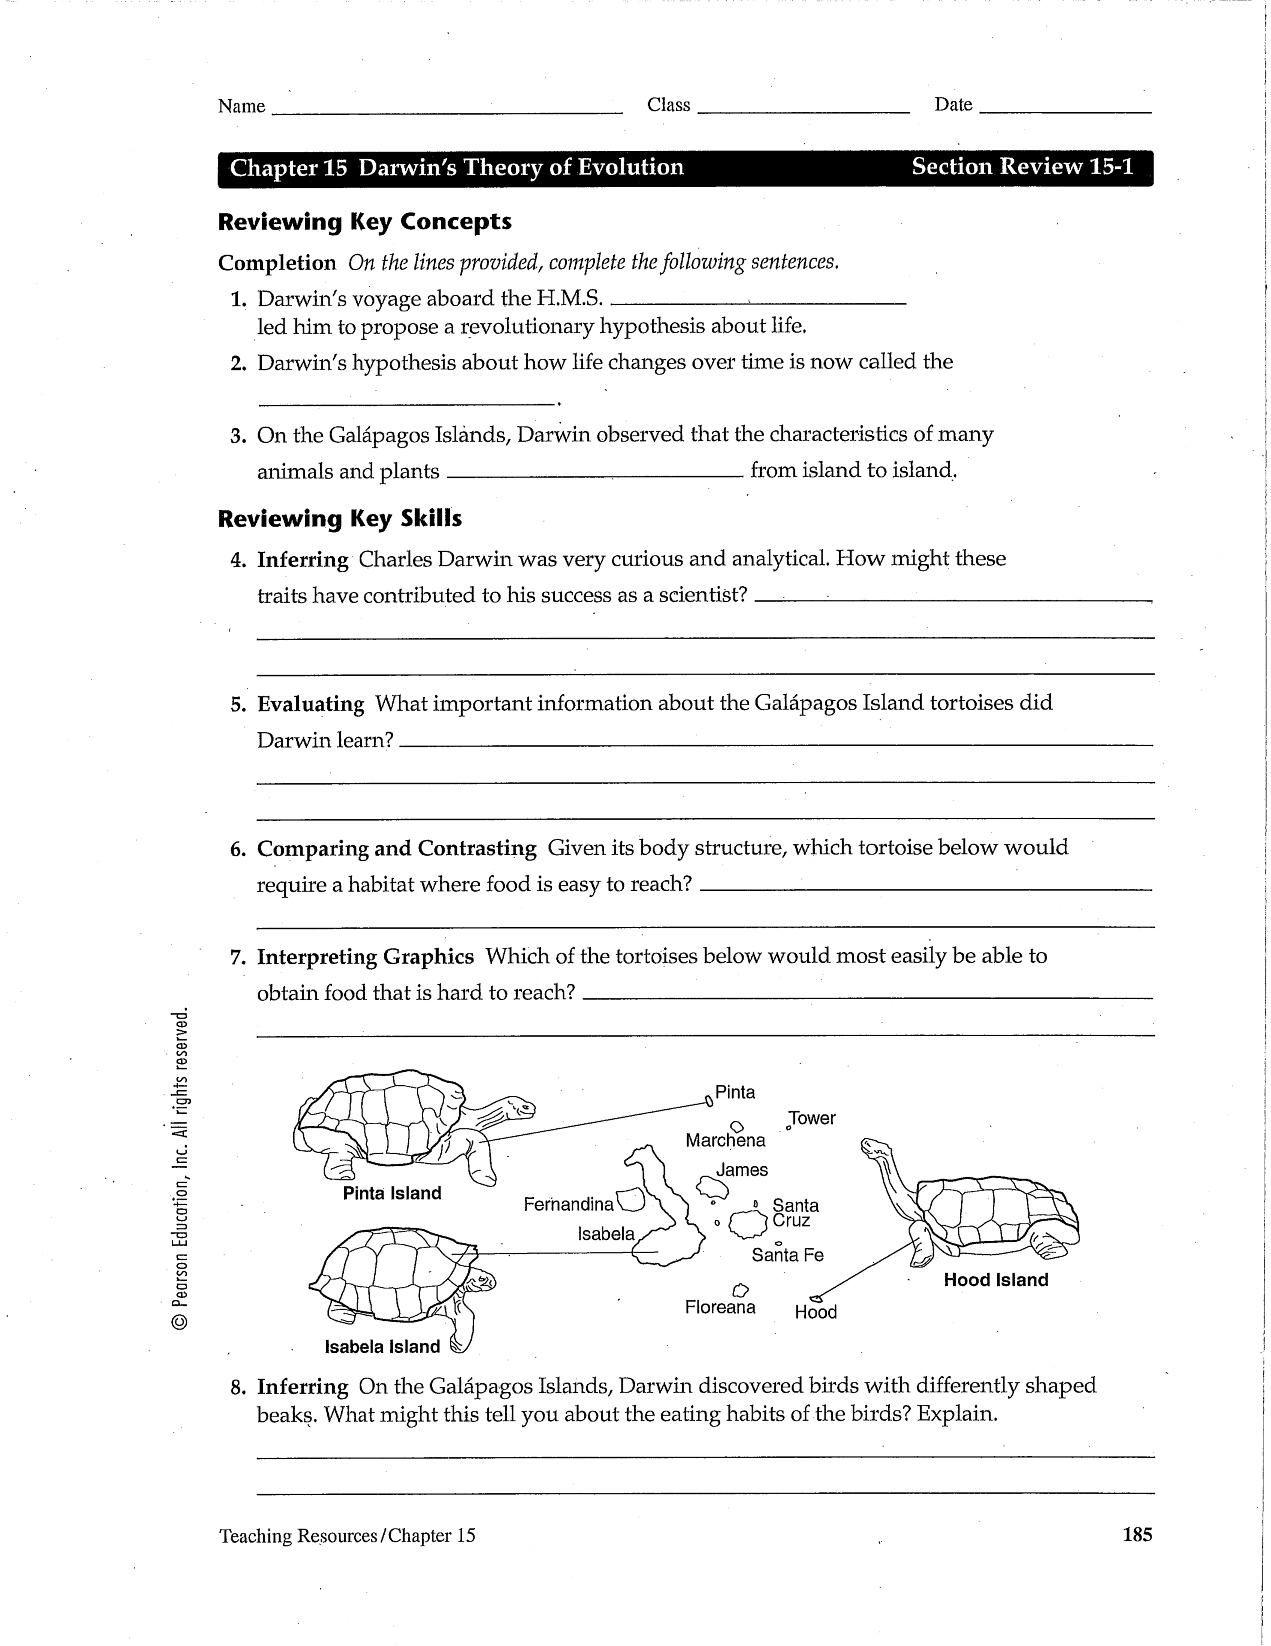 darwin s theory of evolution worksheet chapter theory of darwin s theory of evolution worksheet chapter 15 darwin s theory of evolution reviewing key concepts